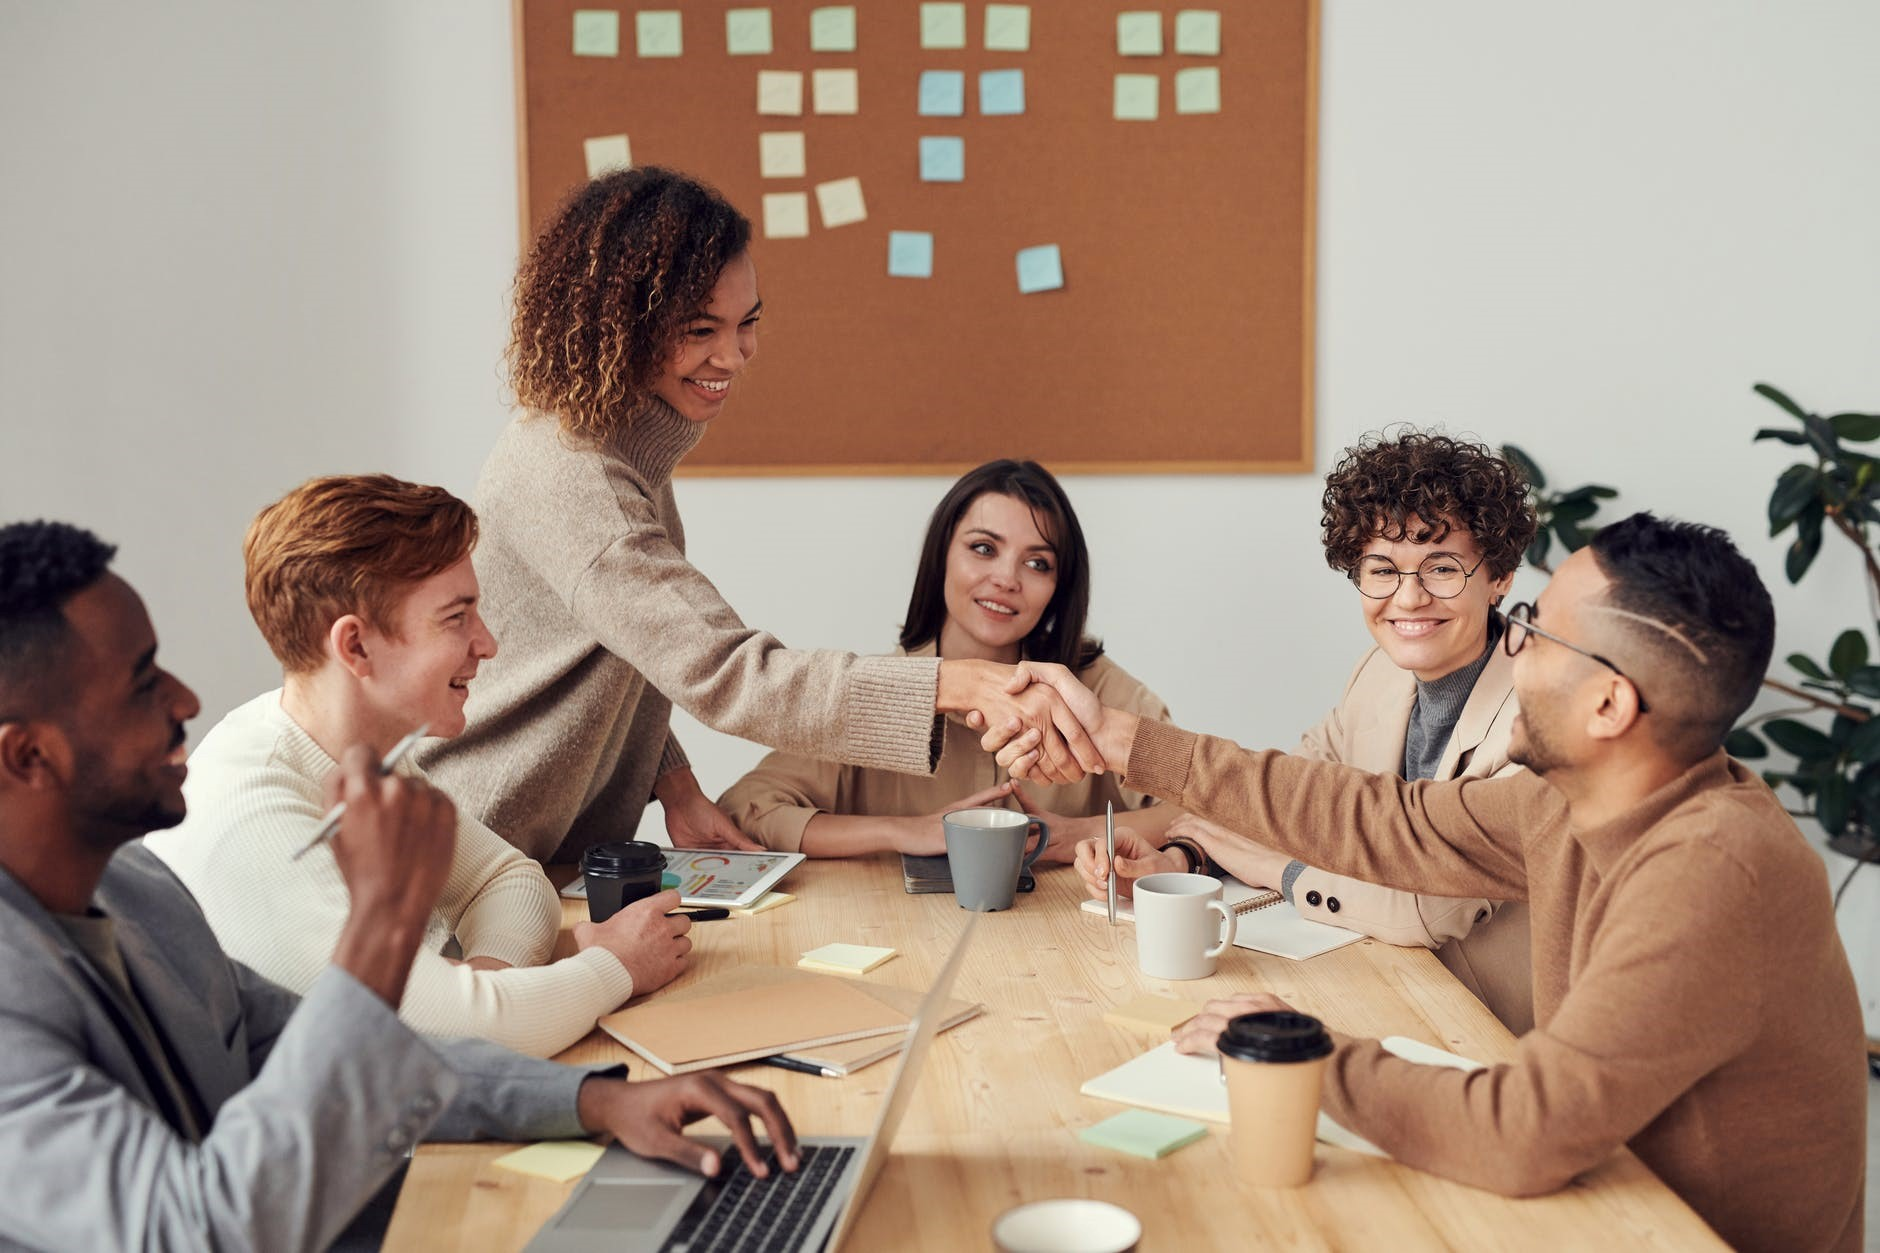 Personal development will help your new business succeed